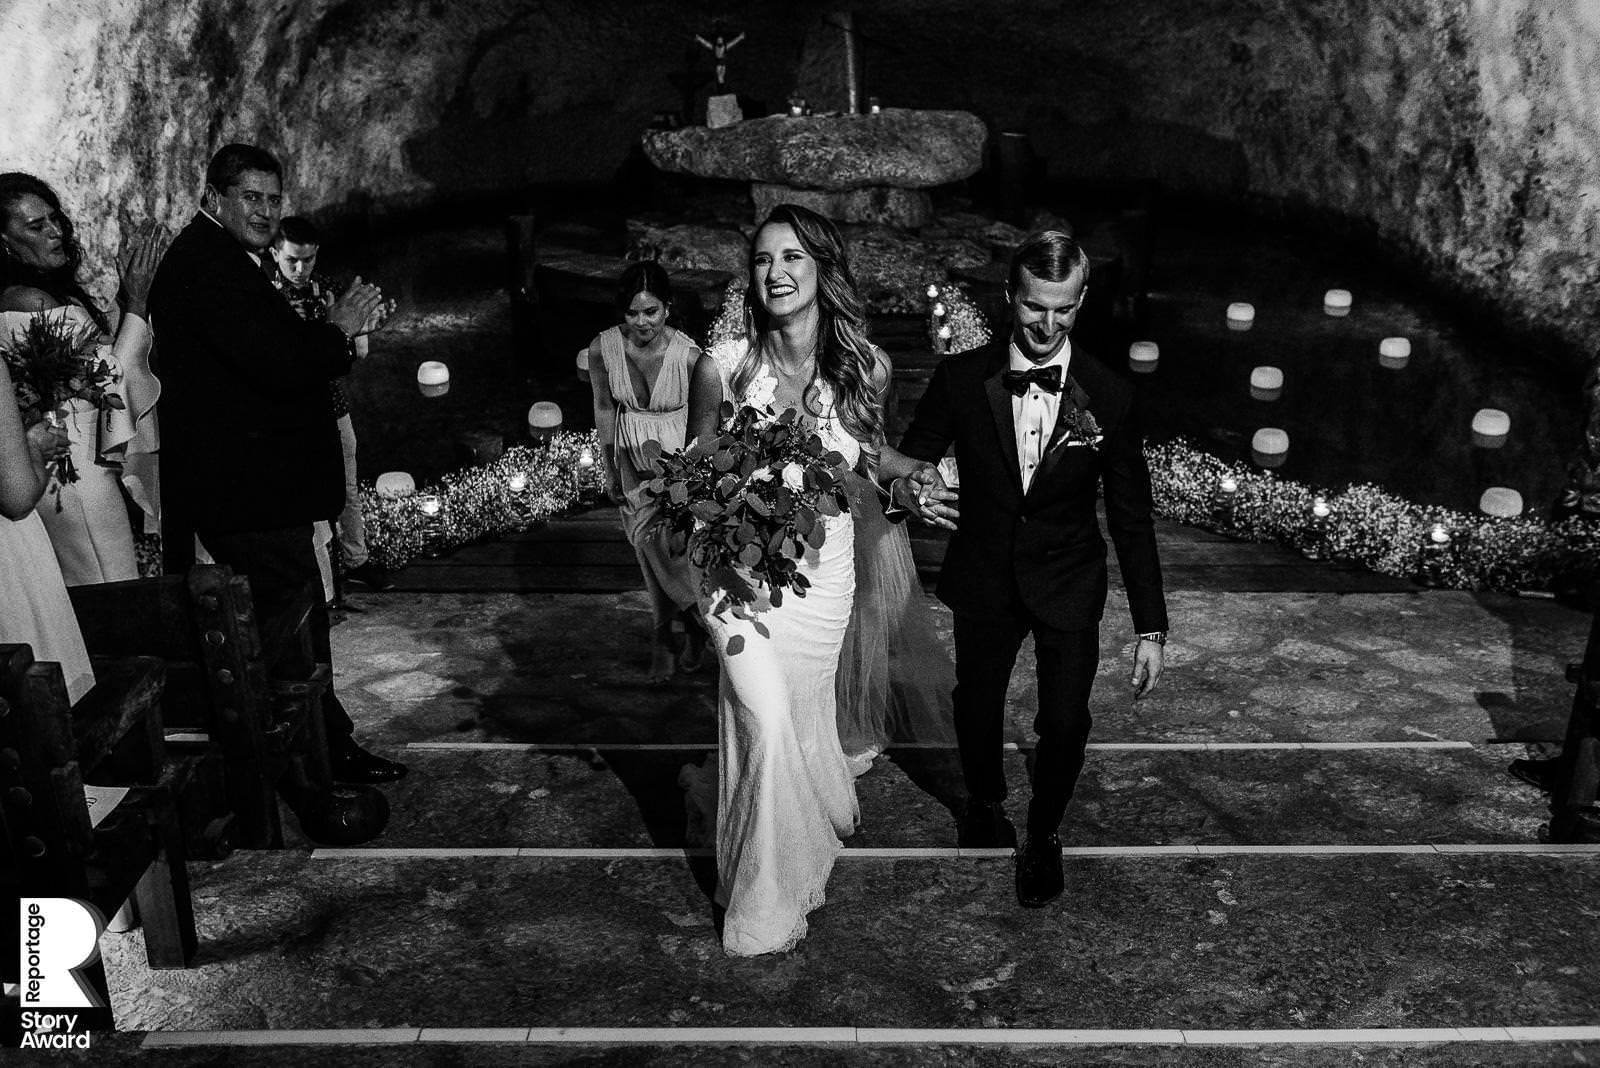 Bride and groom black and white image of them walking out the aisle holding hands at Xcaret Park Chapel